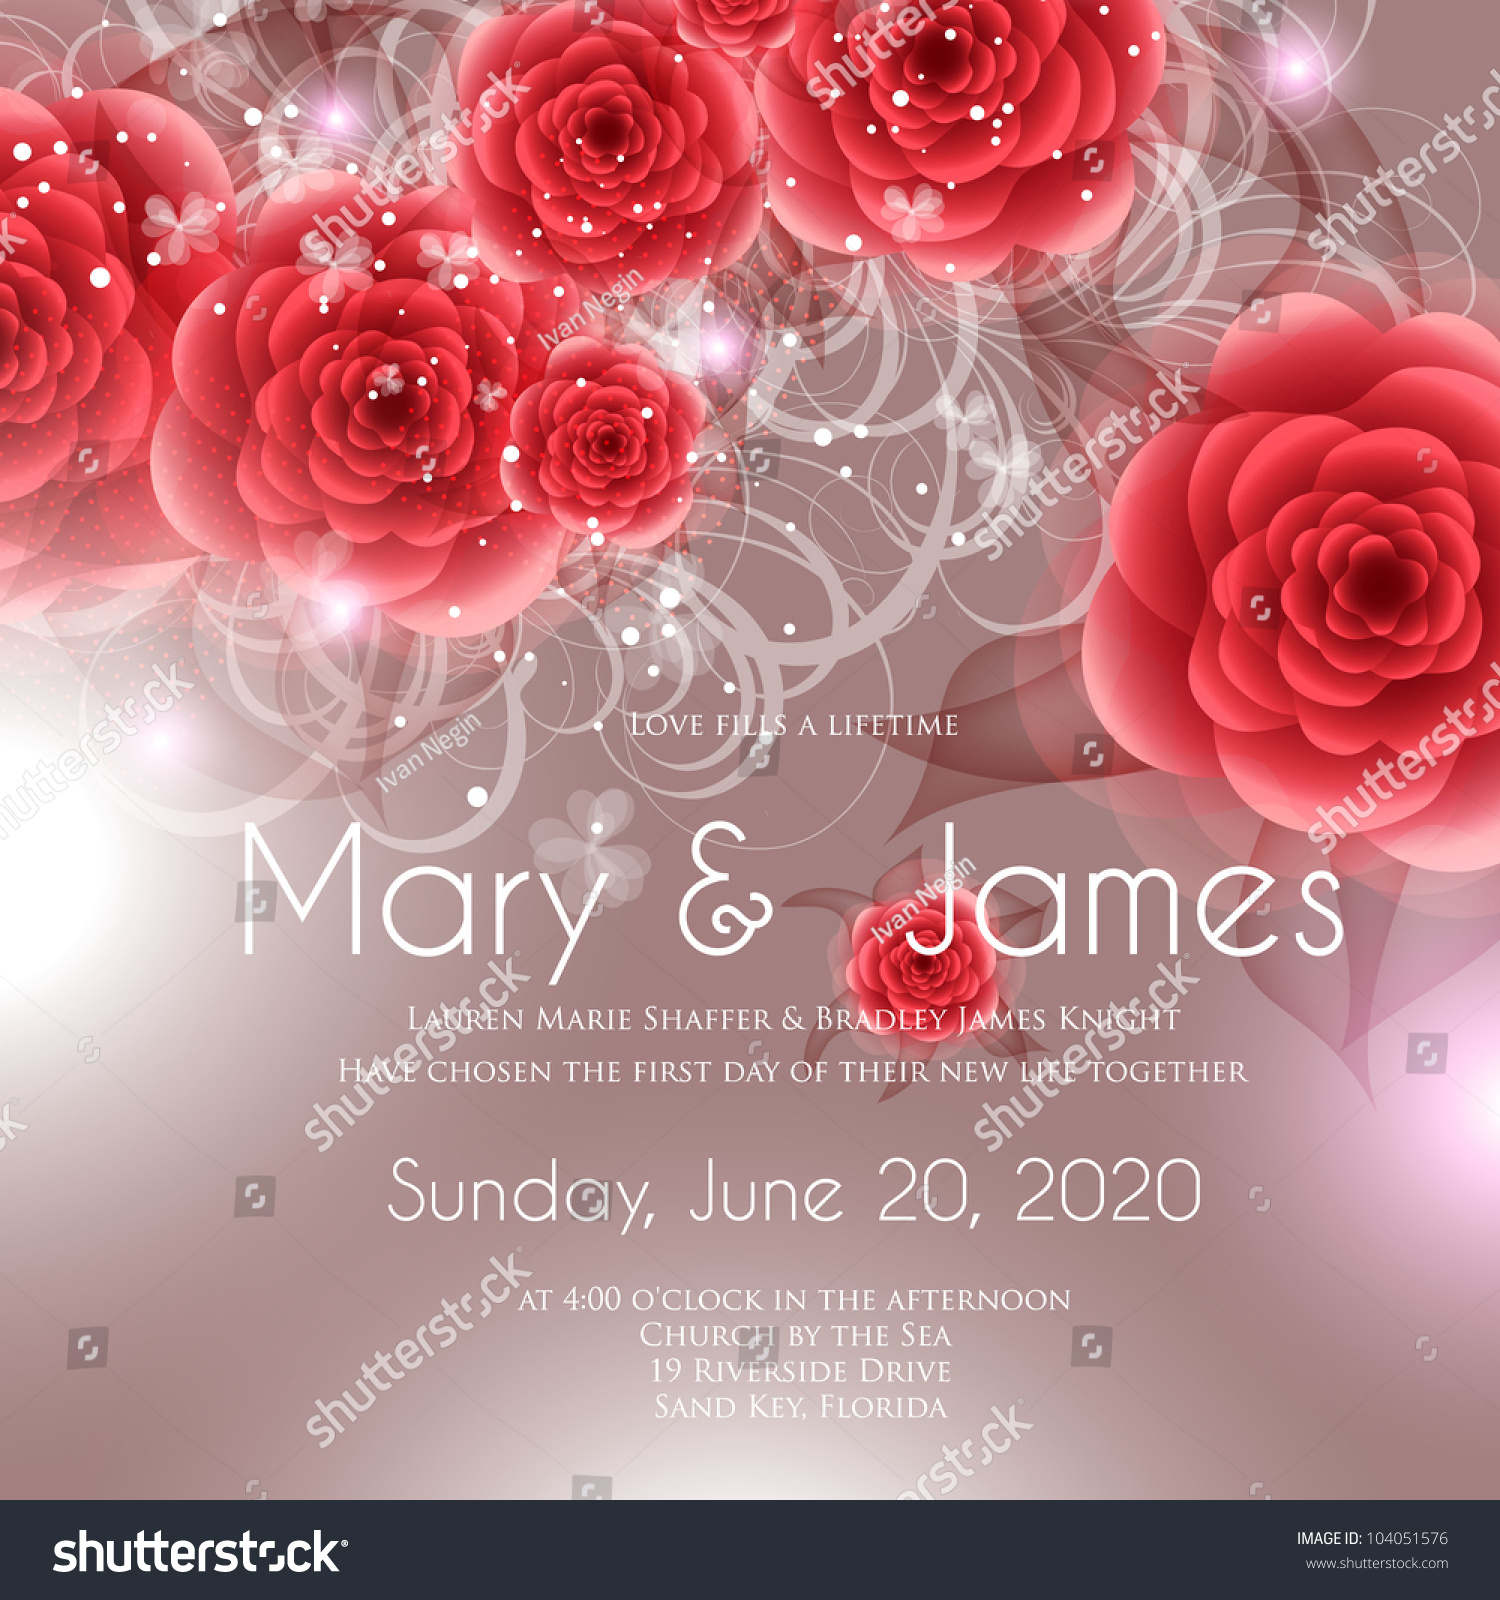 Wedding Card Invitation Abstract Floral Background Stock Vector ...